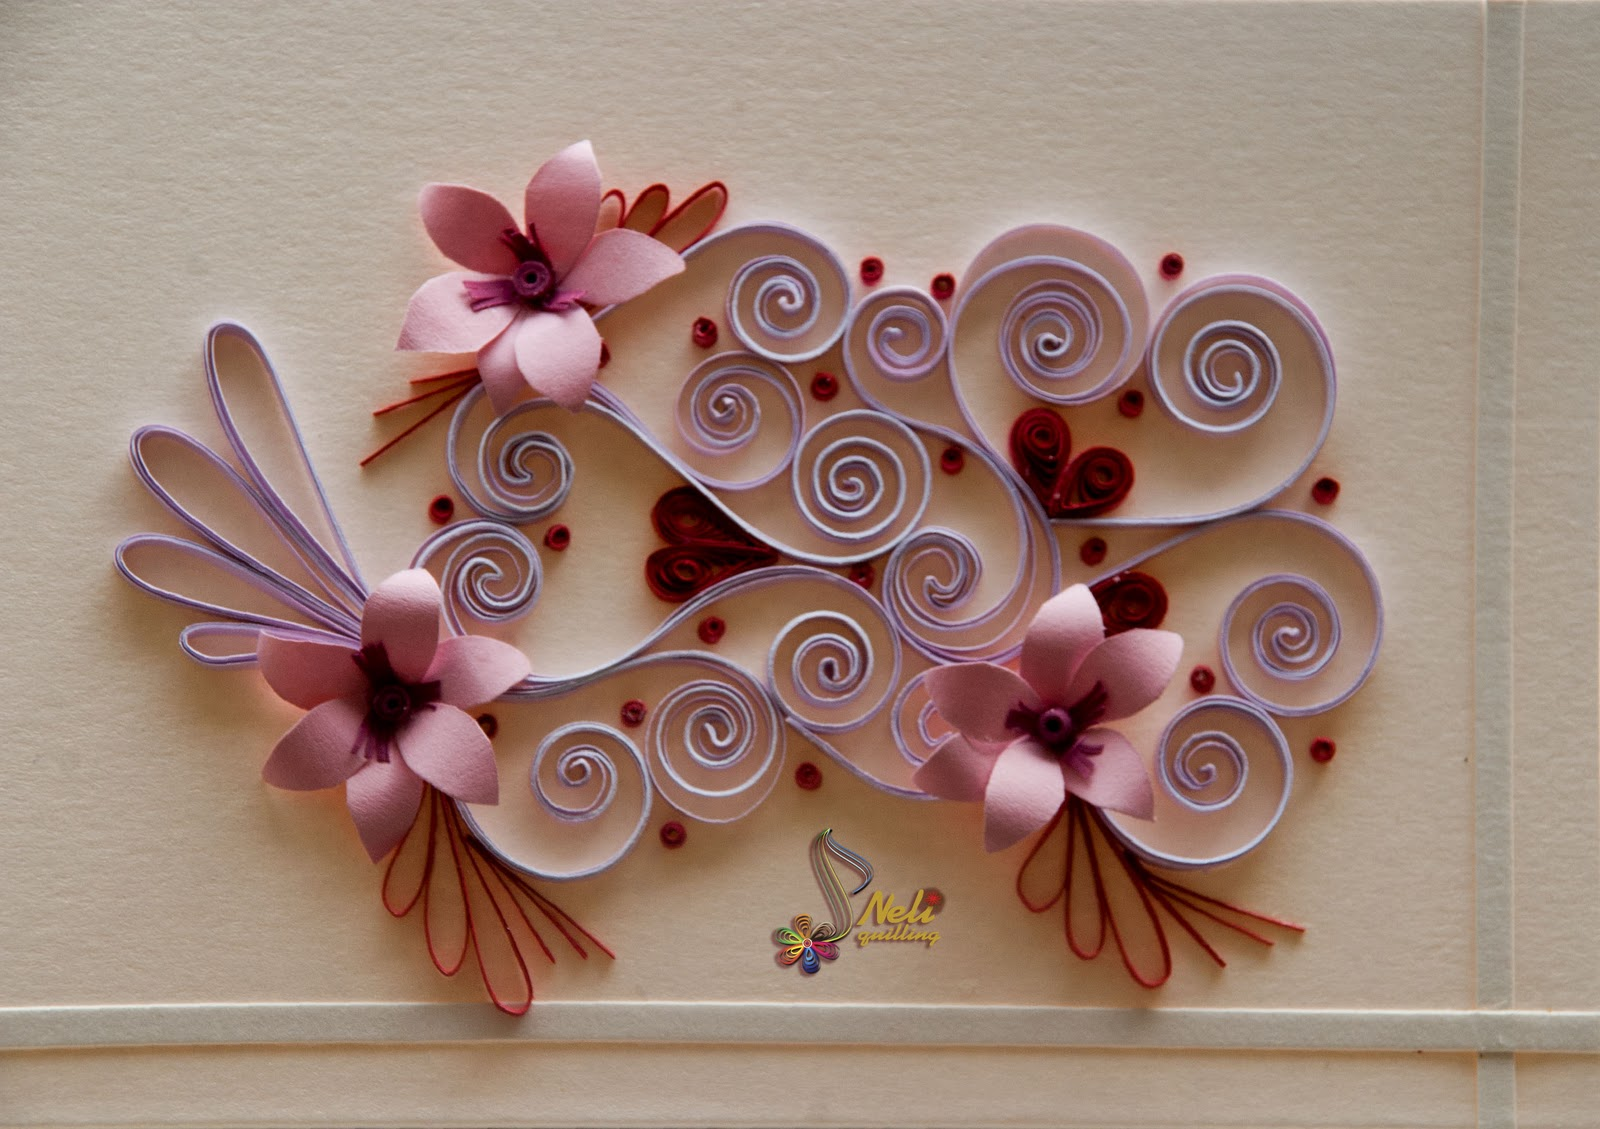 Aparador Sala De Jantar ~ Neli Quilling Art Quilling cards With love  2